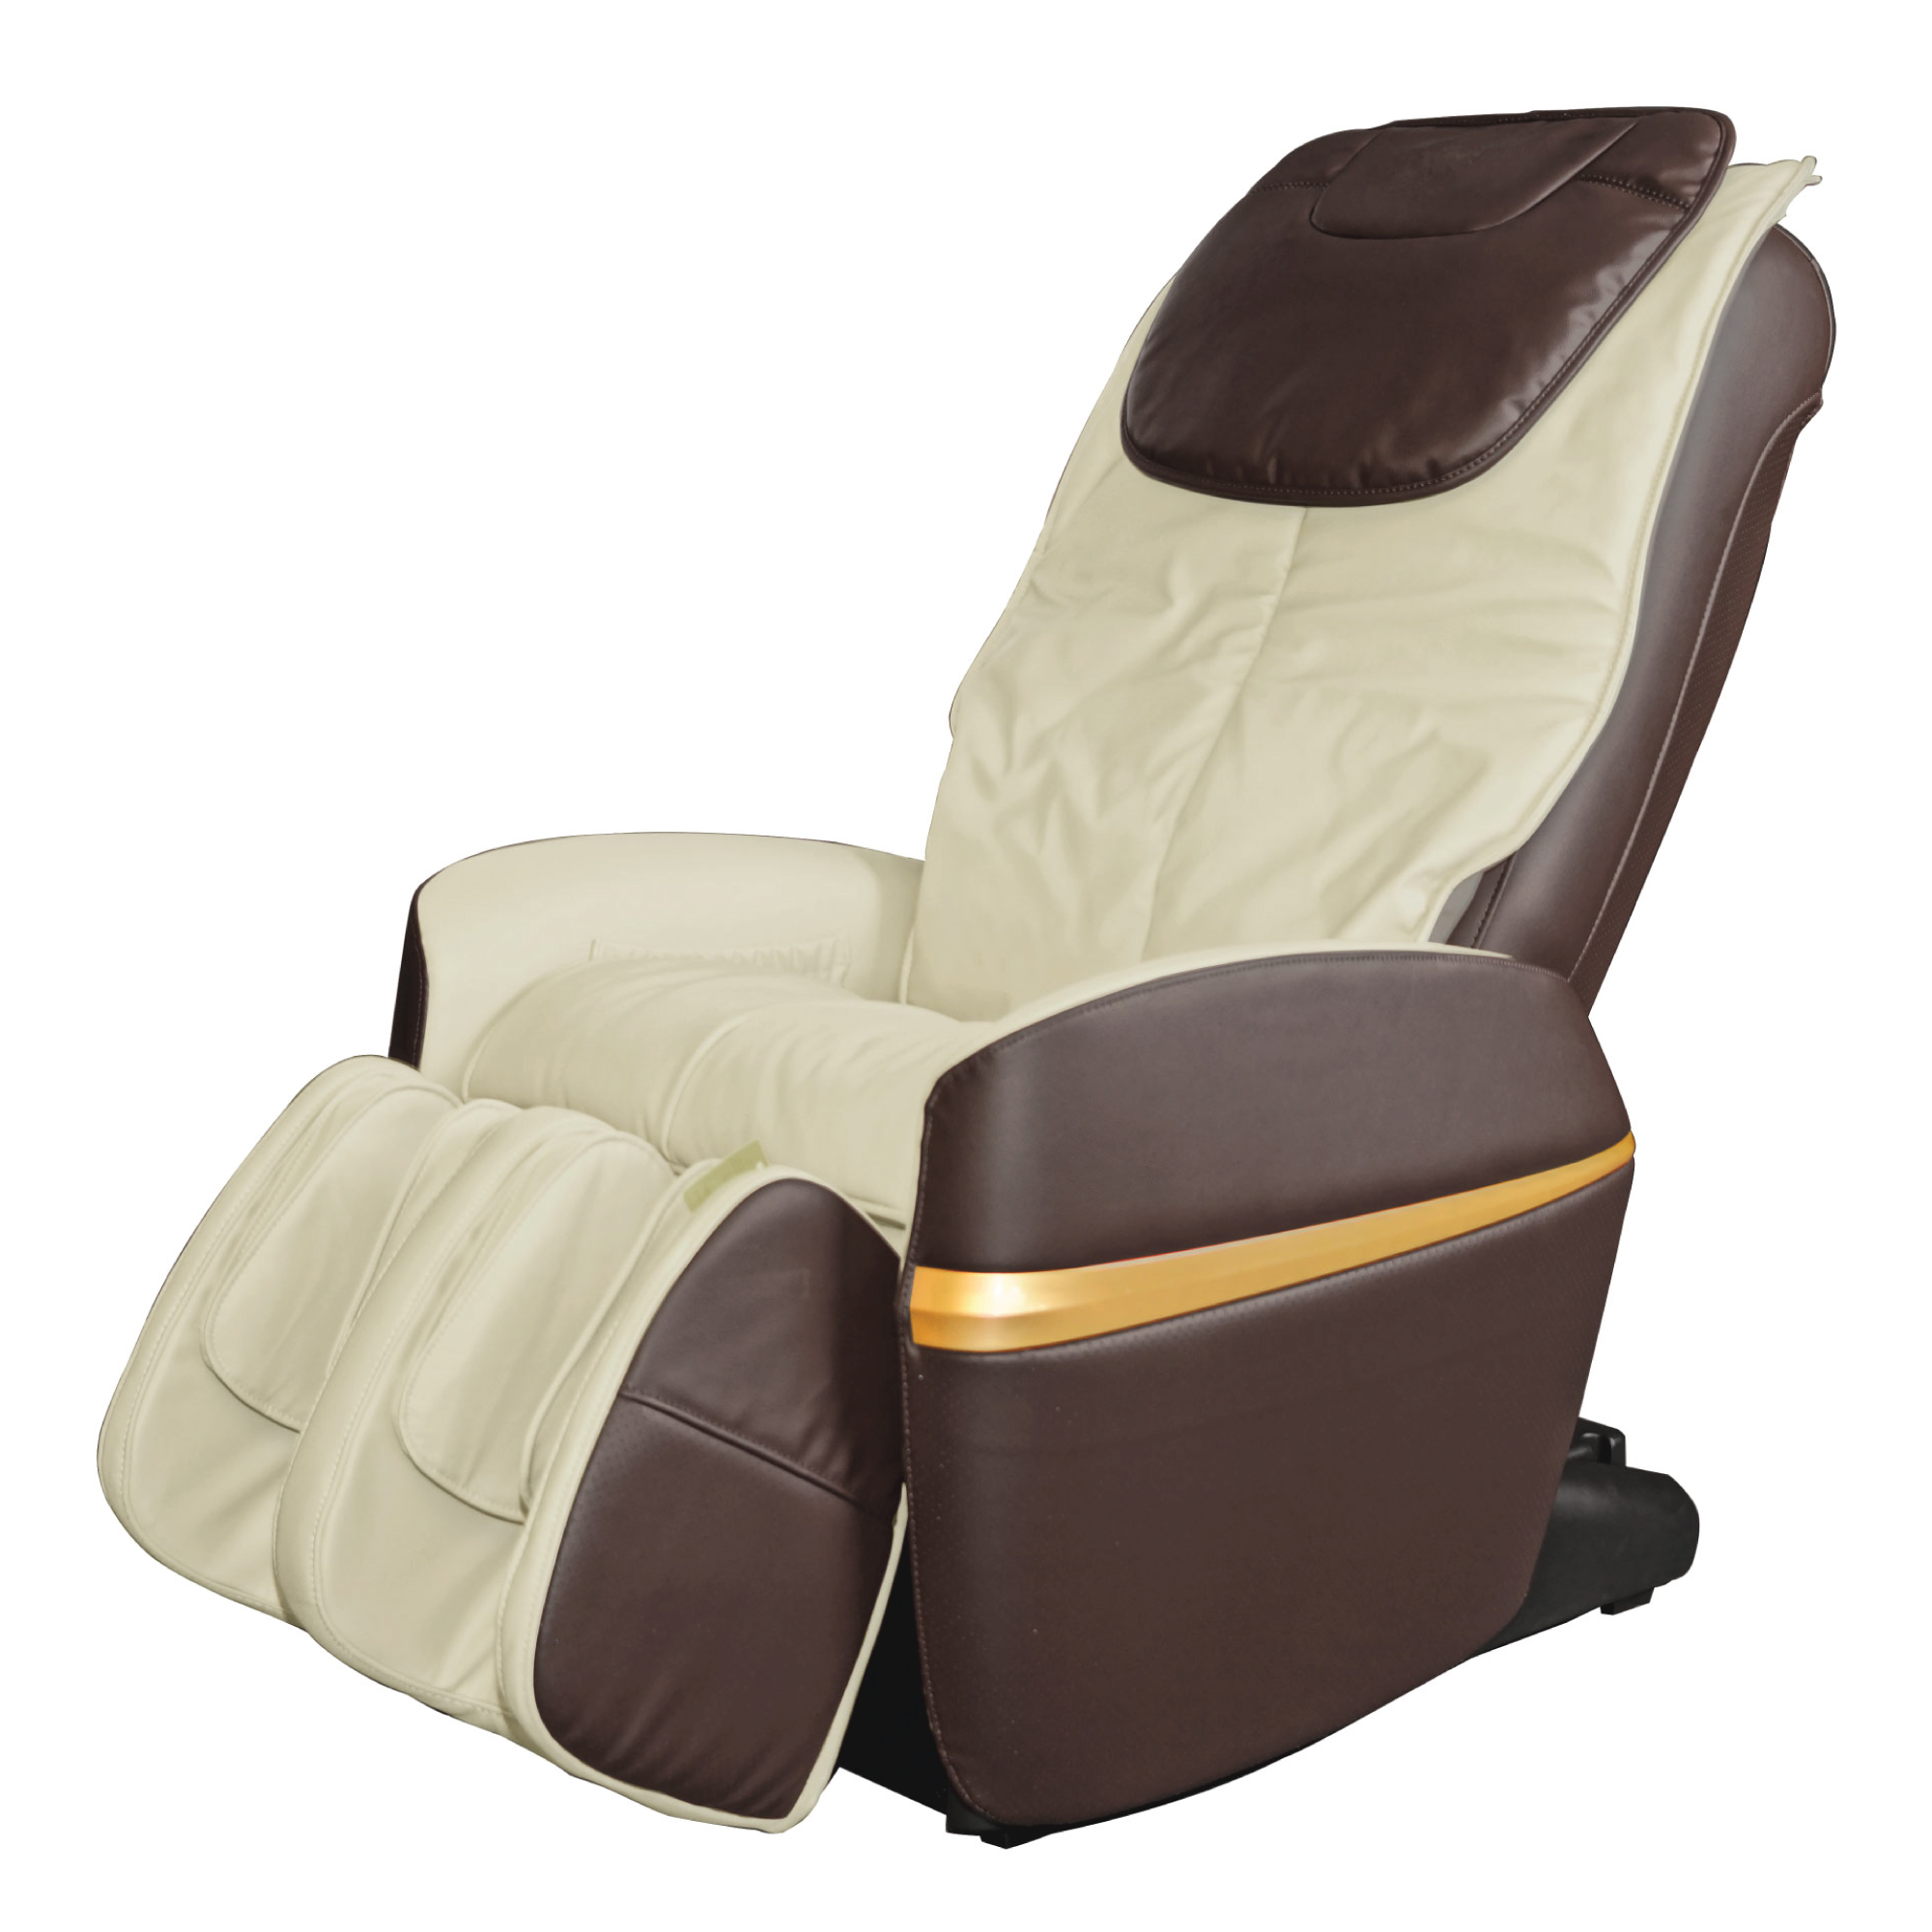 Messaging Chair | Osaki Massage Chair | Refurbished Massage Chair